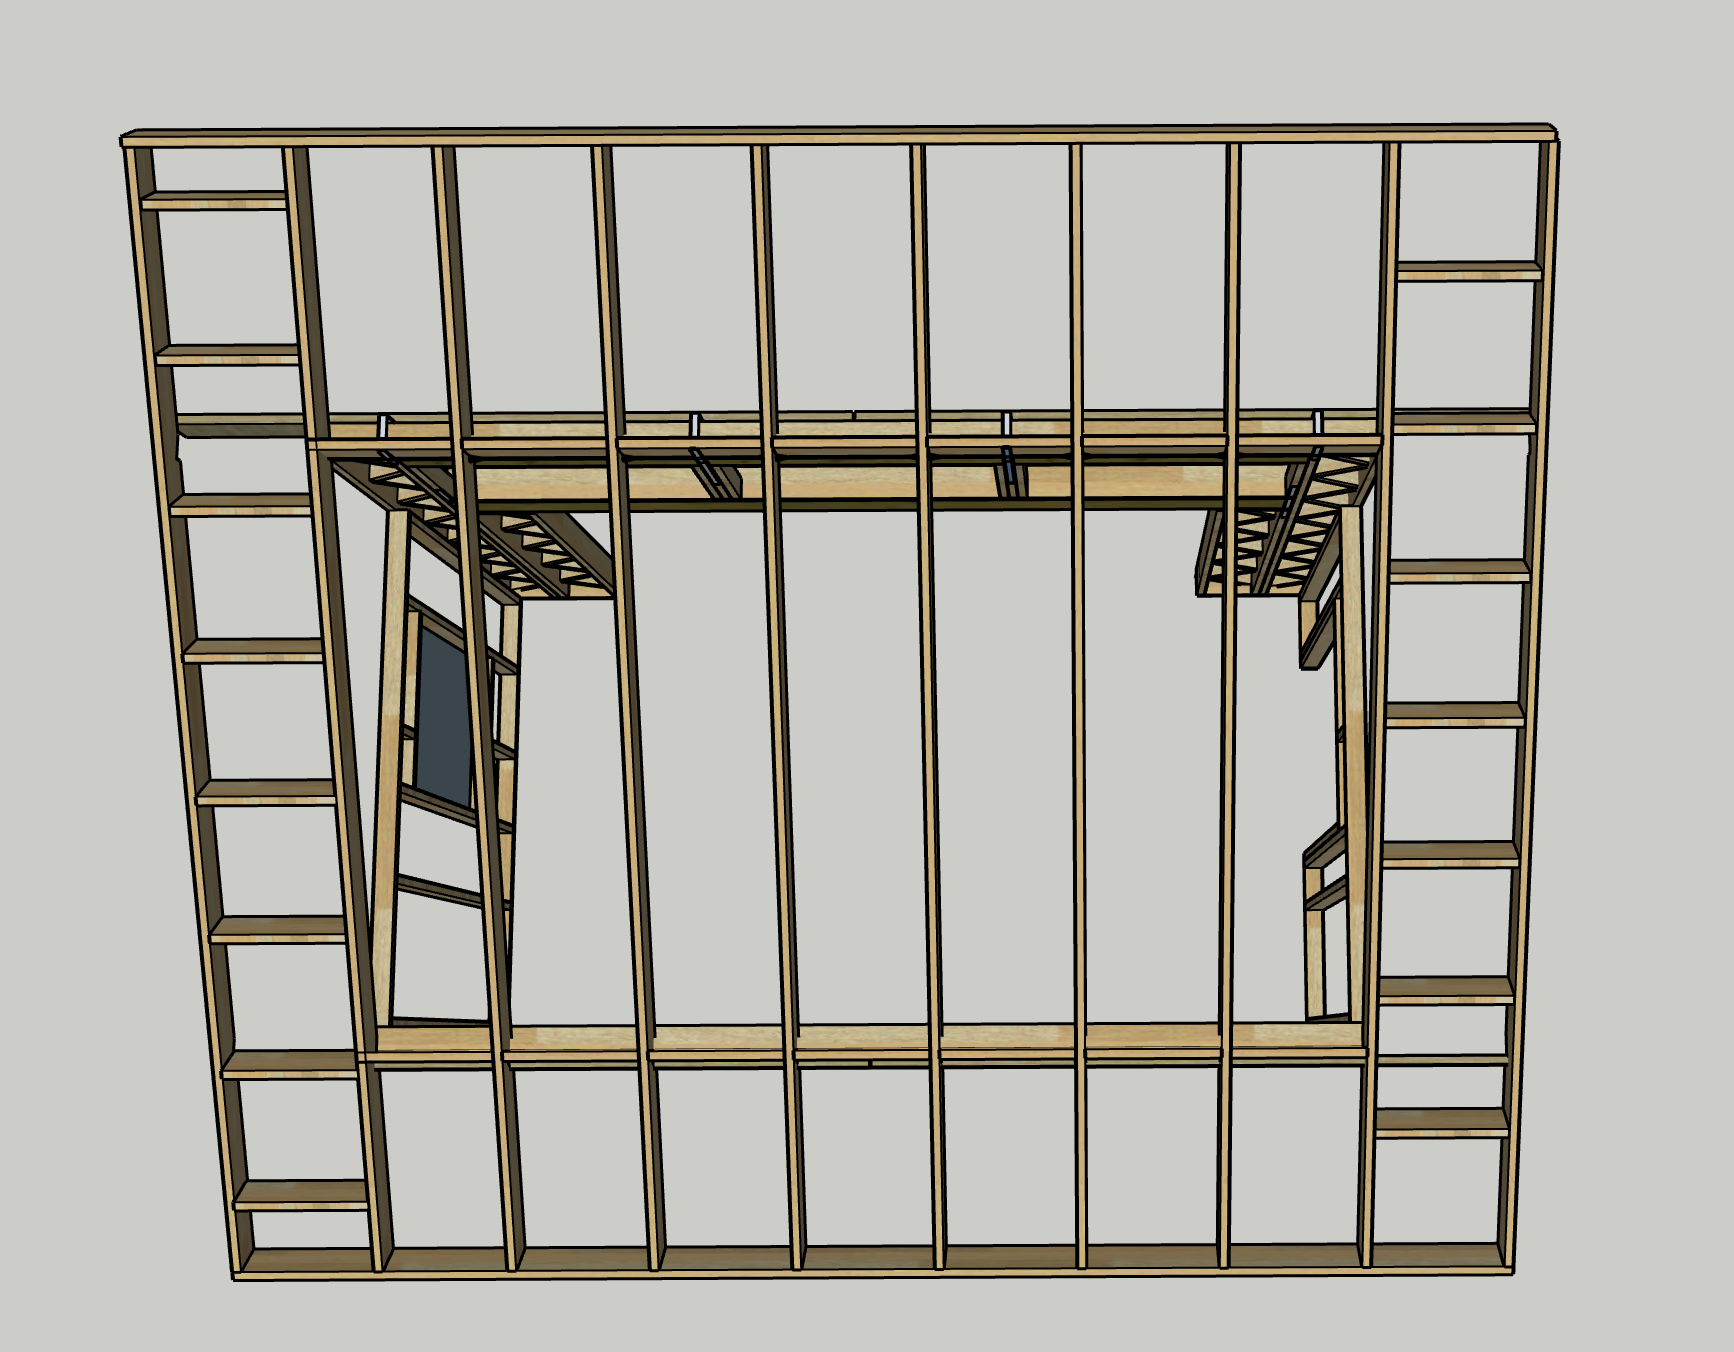 Shed / workshop framing design--is it too ambitious?-screen-shot-2020-04-26-12.57.42-pm.png